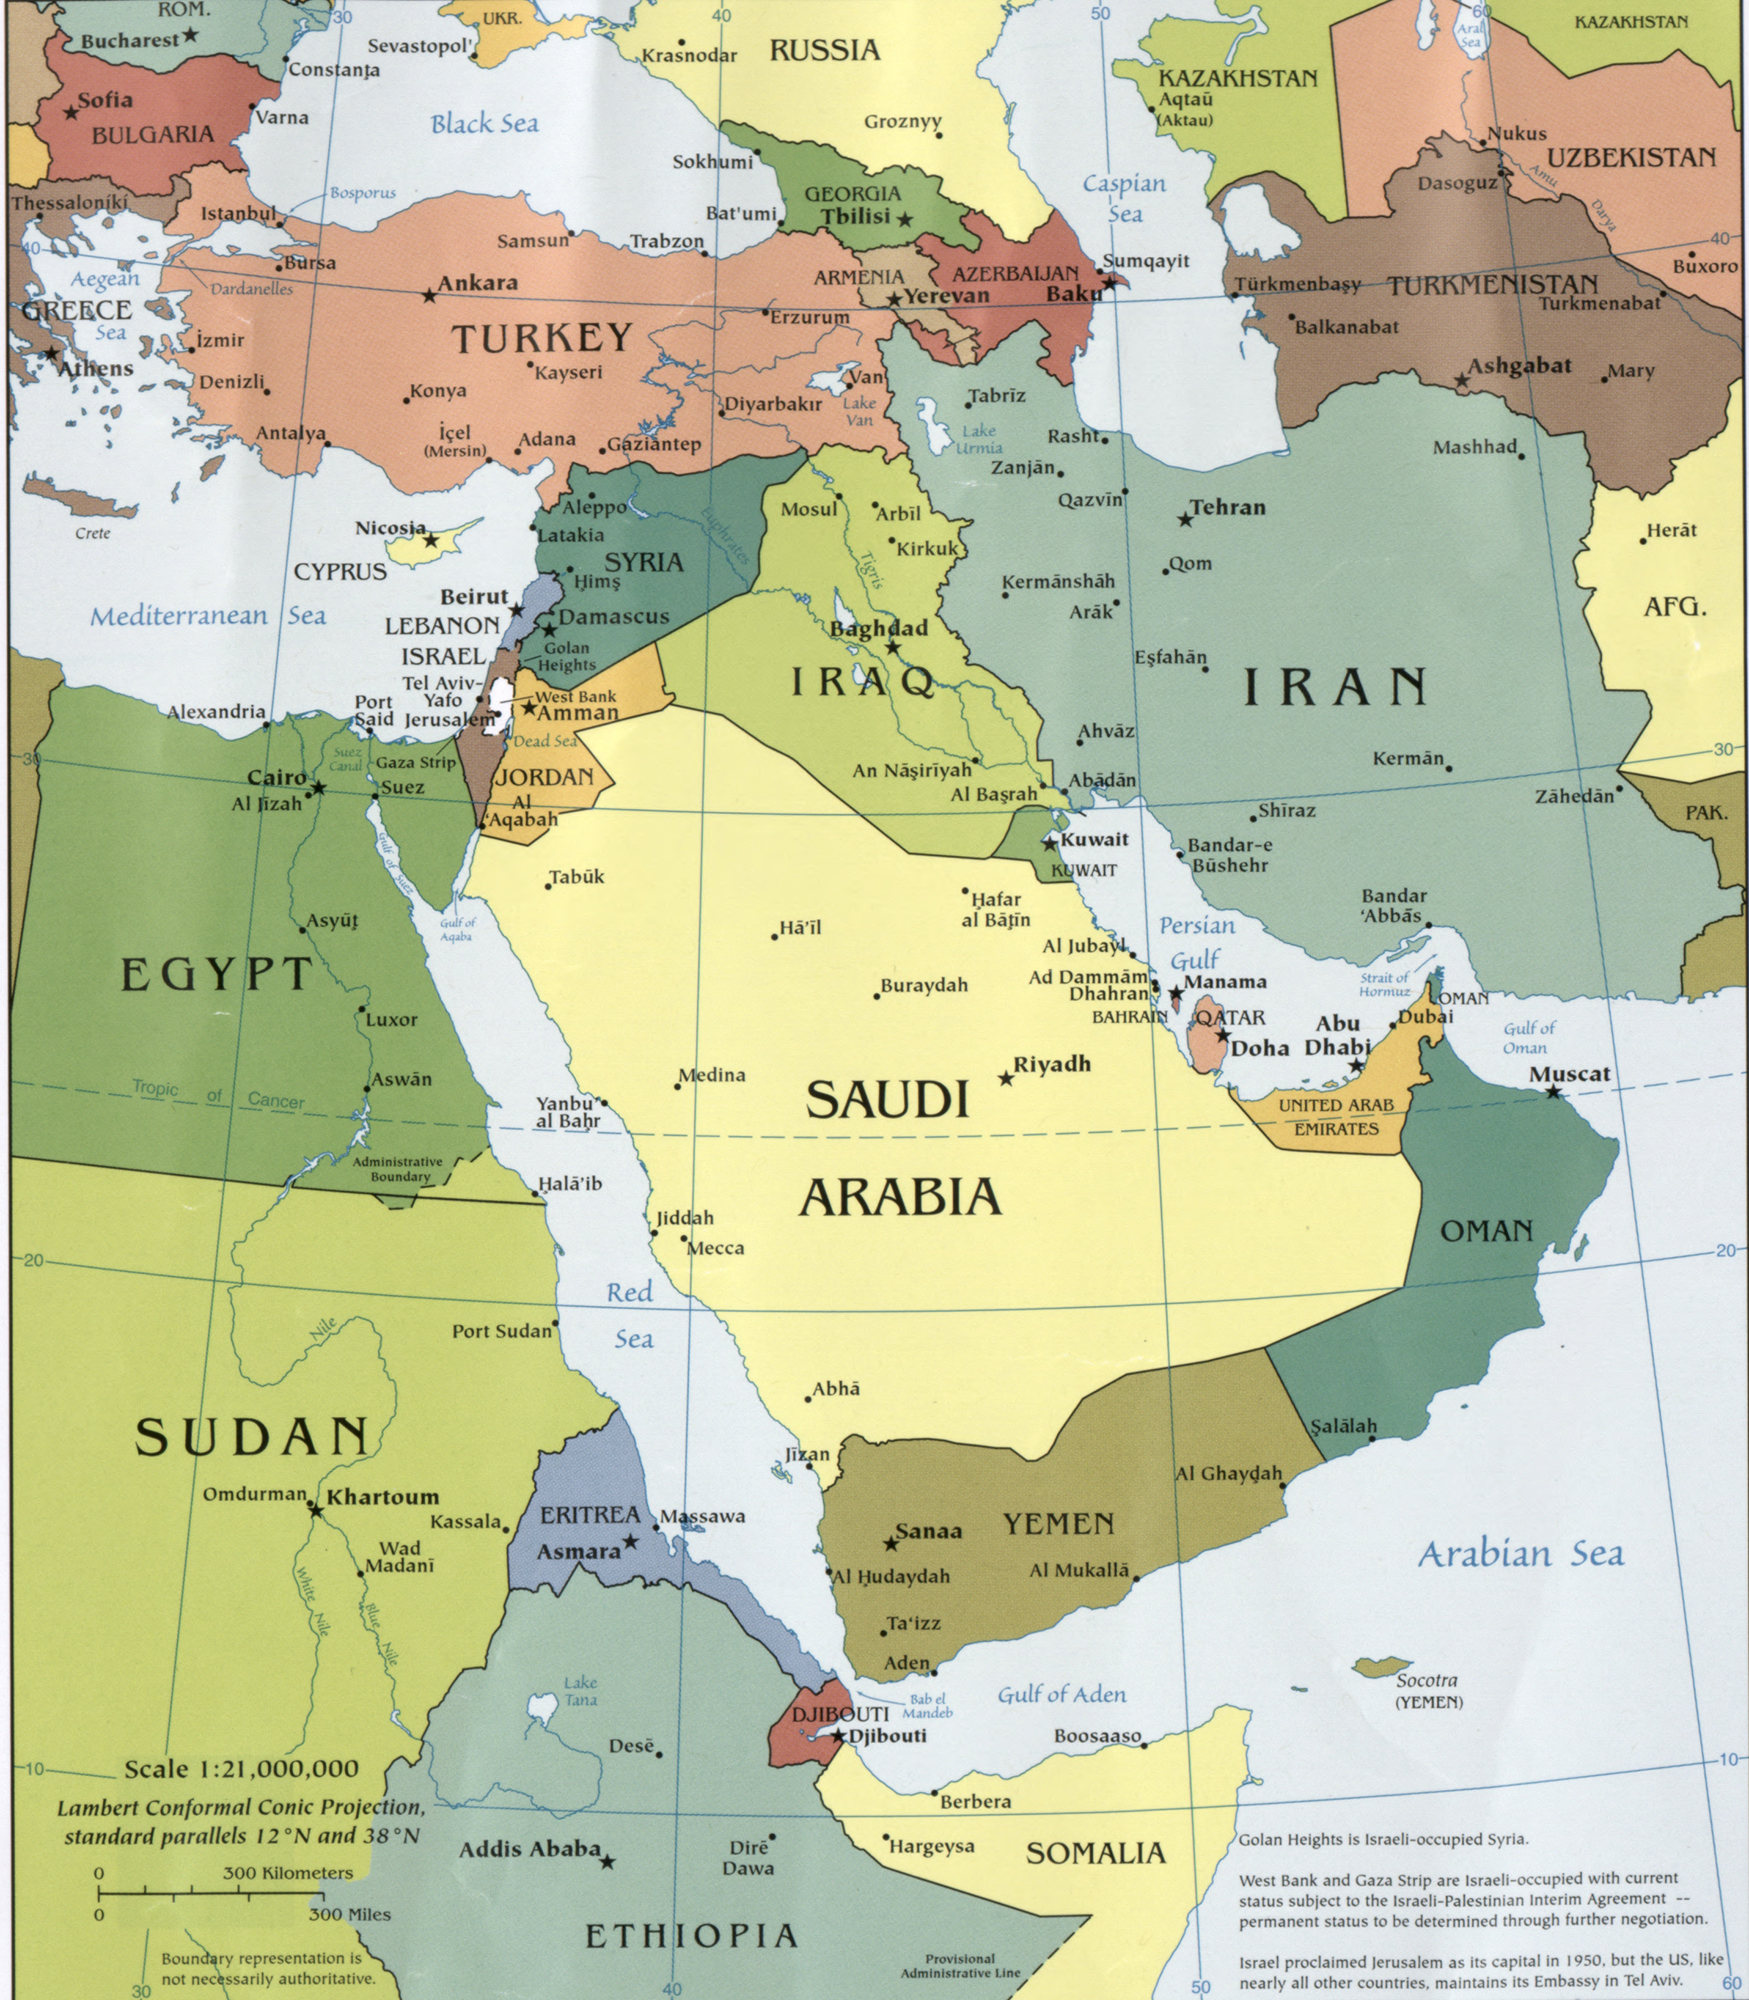 Map of the Middle East 2010